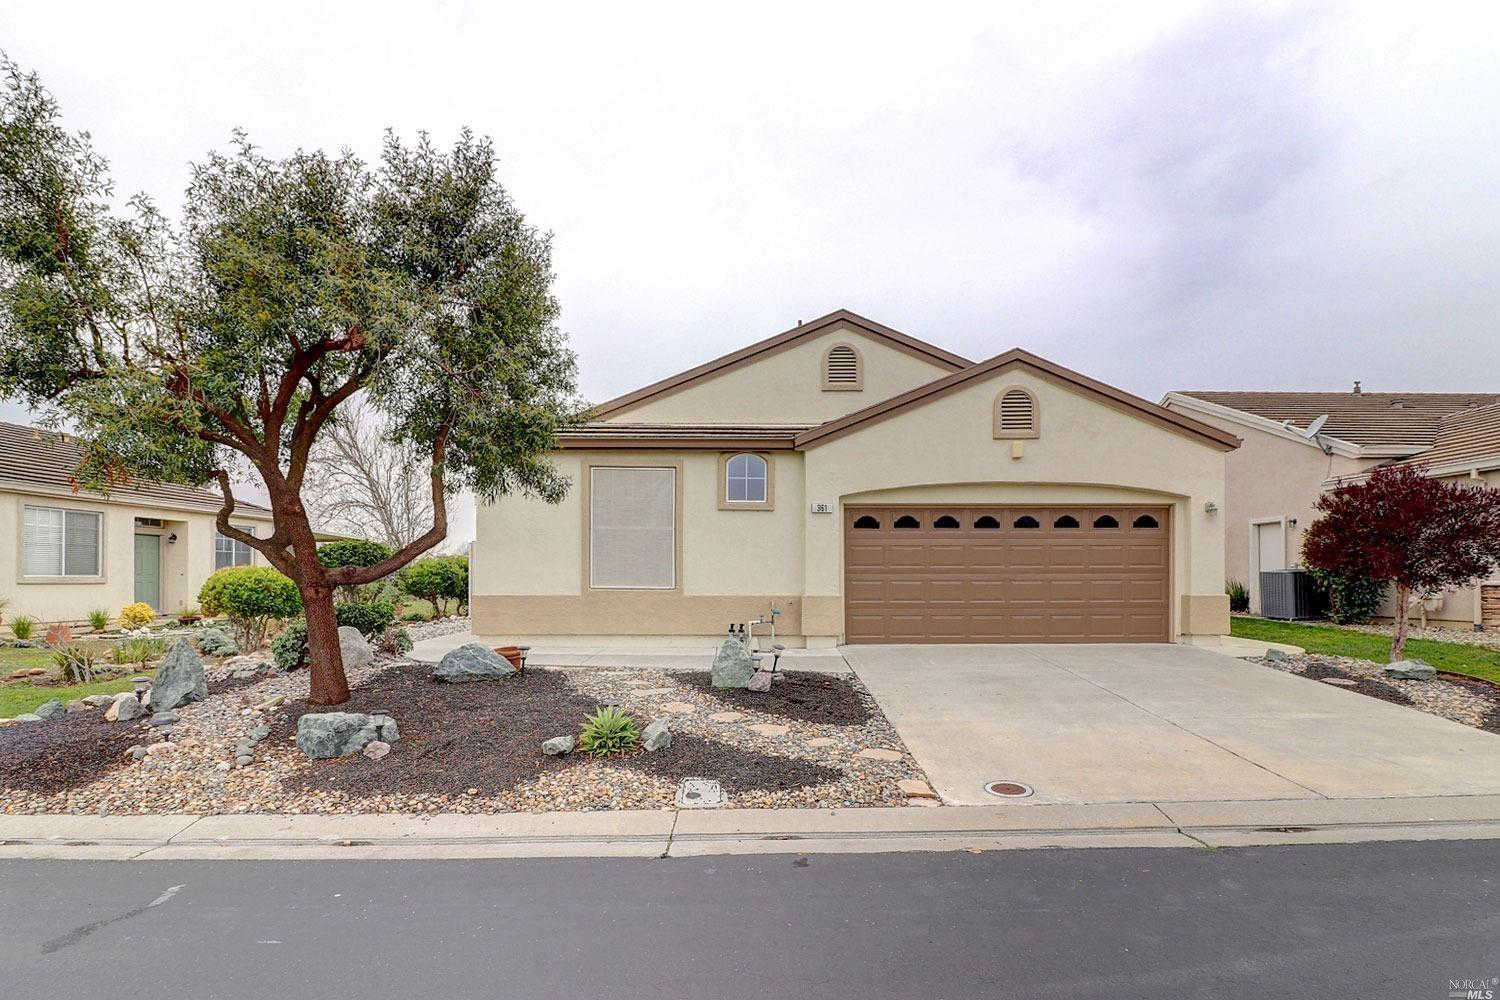 361 Edgewood Drive, Rio Vista, CA 94571 has an Open House on  Sunday, January 19, 2020 12:00 PM to 2:00 PM